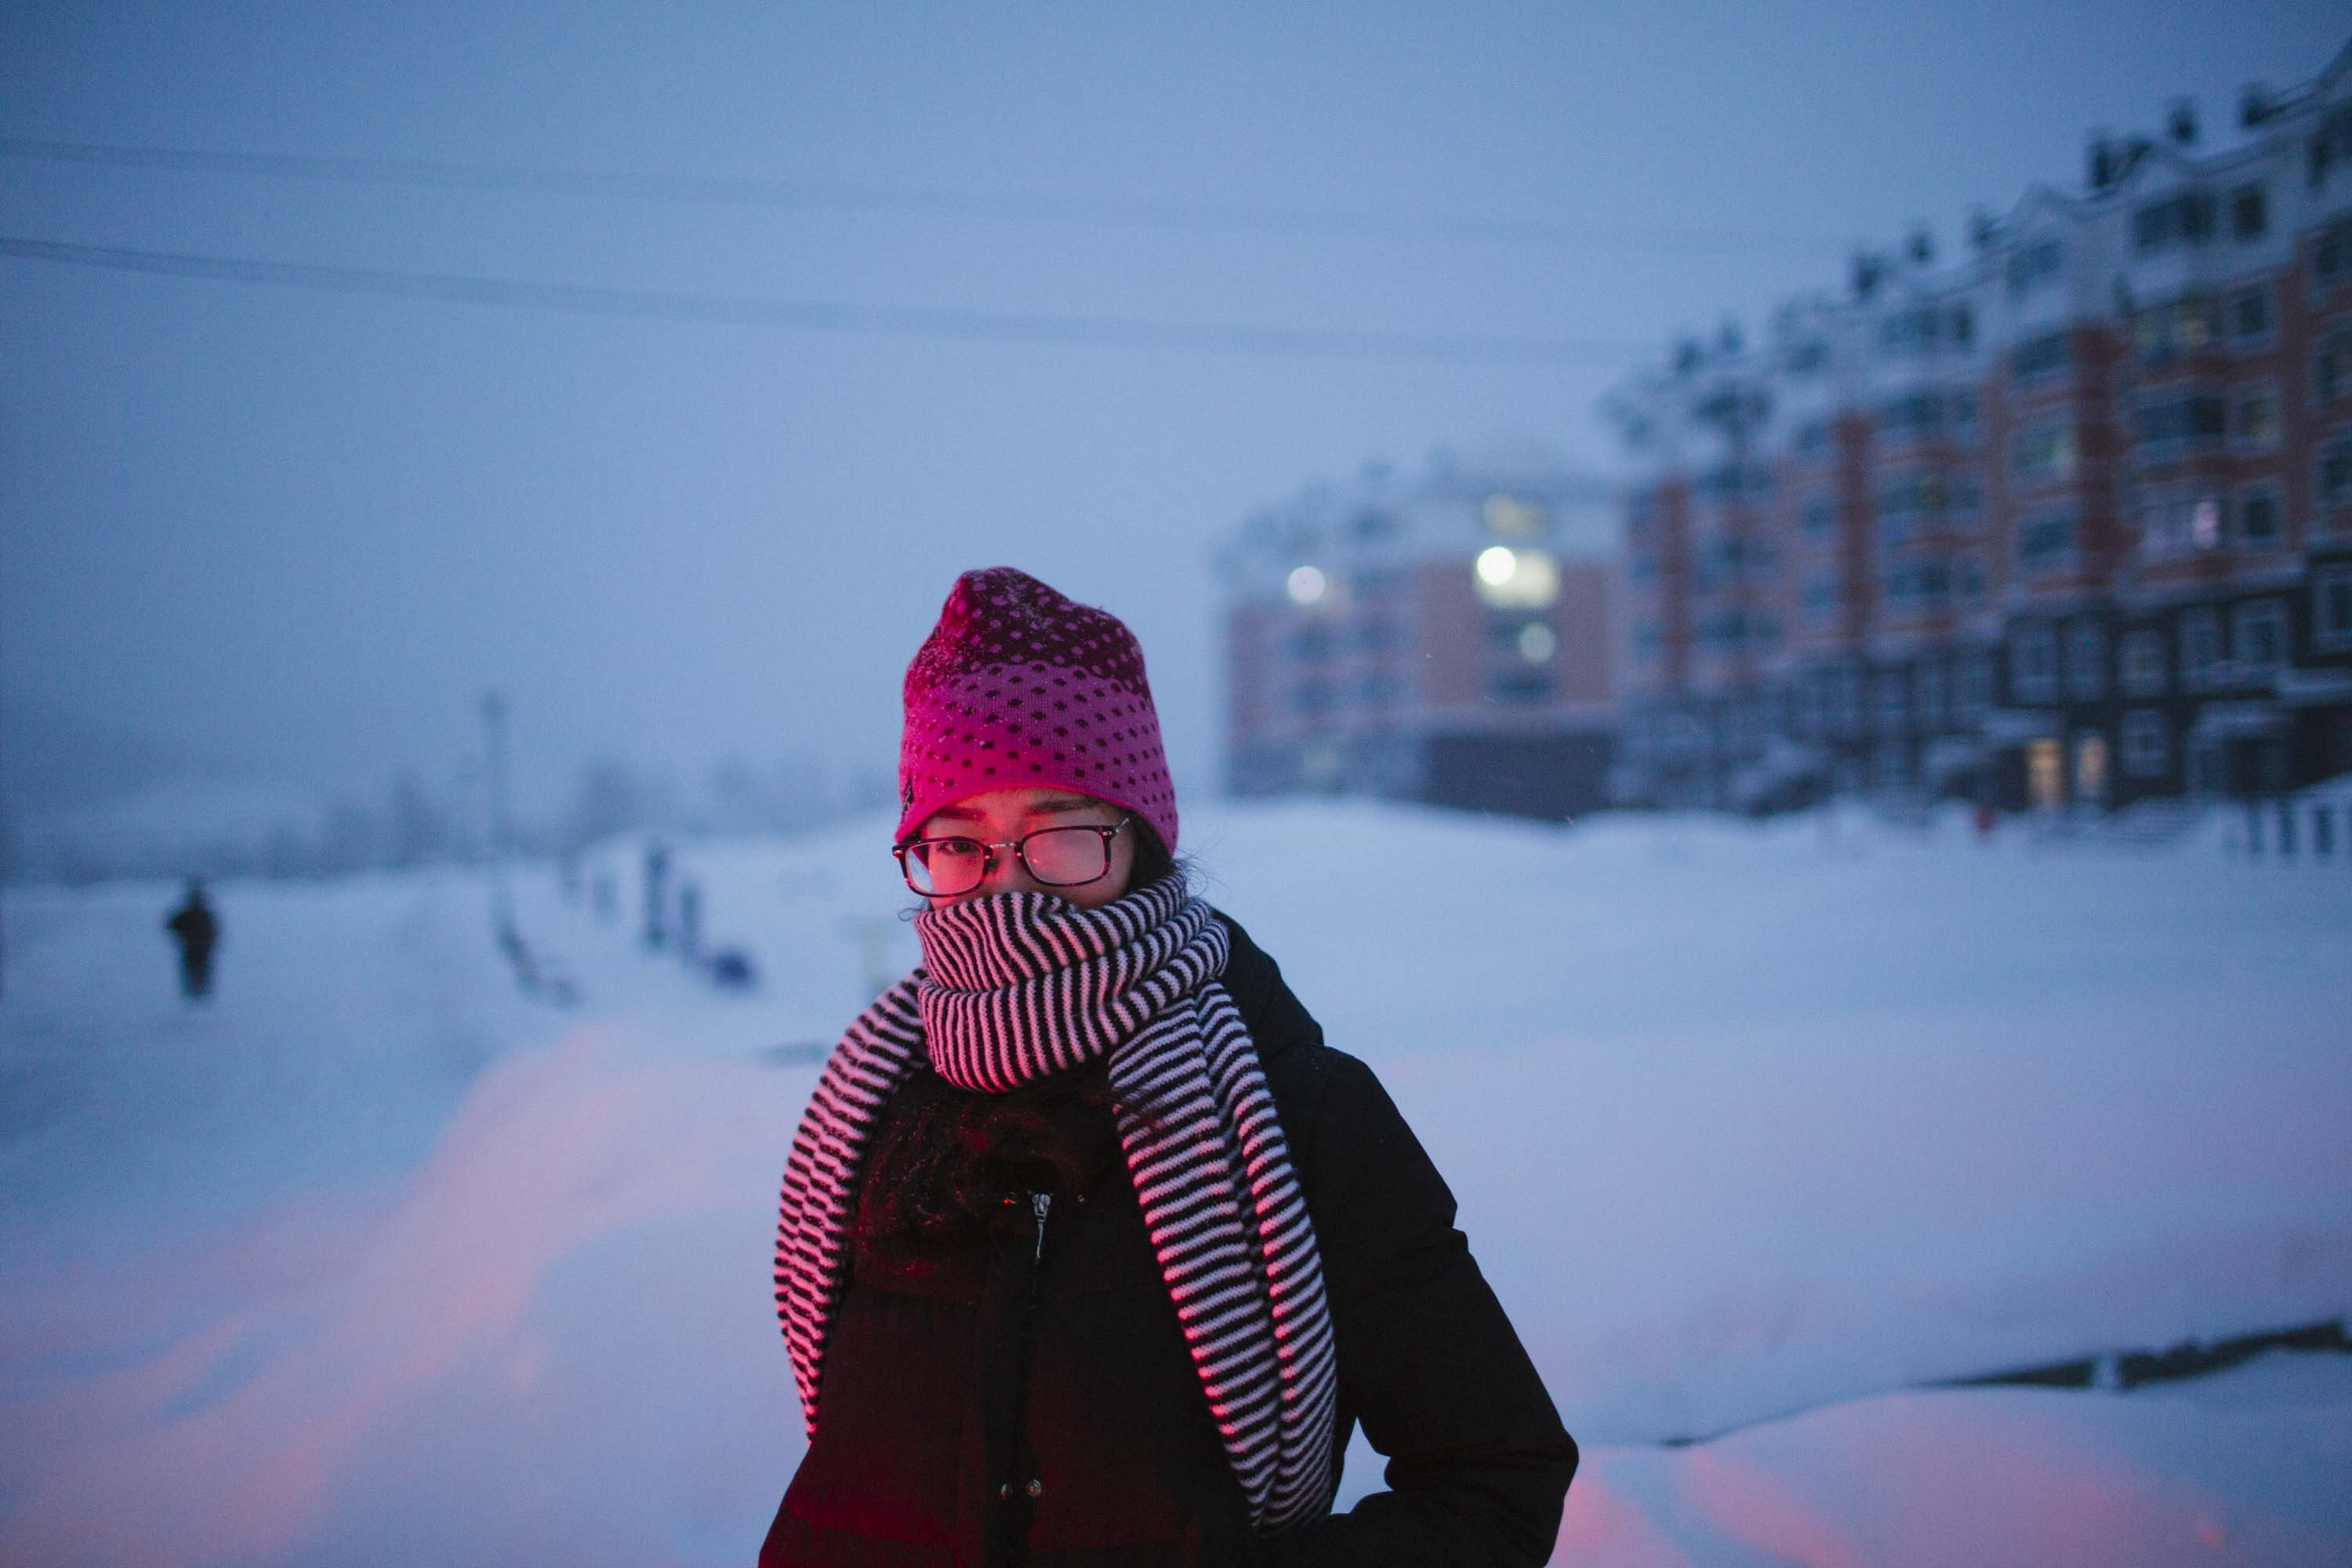 Ru Dongying walks down a snow-covered street in Shuangyashan, in front of recently built apartments, Jan. 19, 2016. Her family's home once stood here. Zhou Pinglang/Sixth Tone